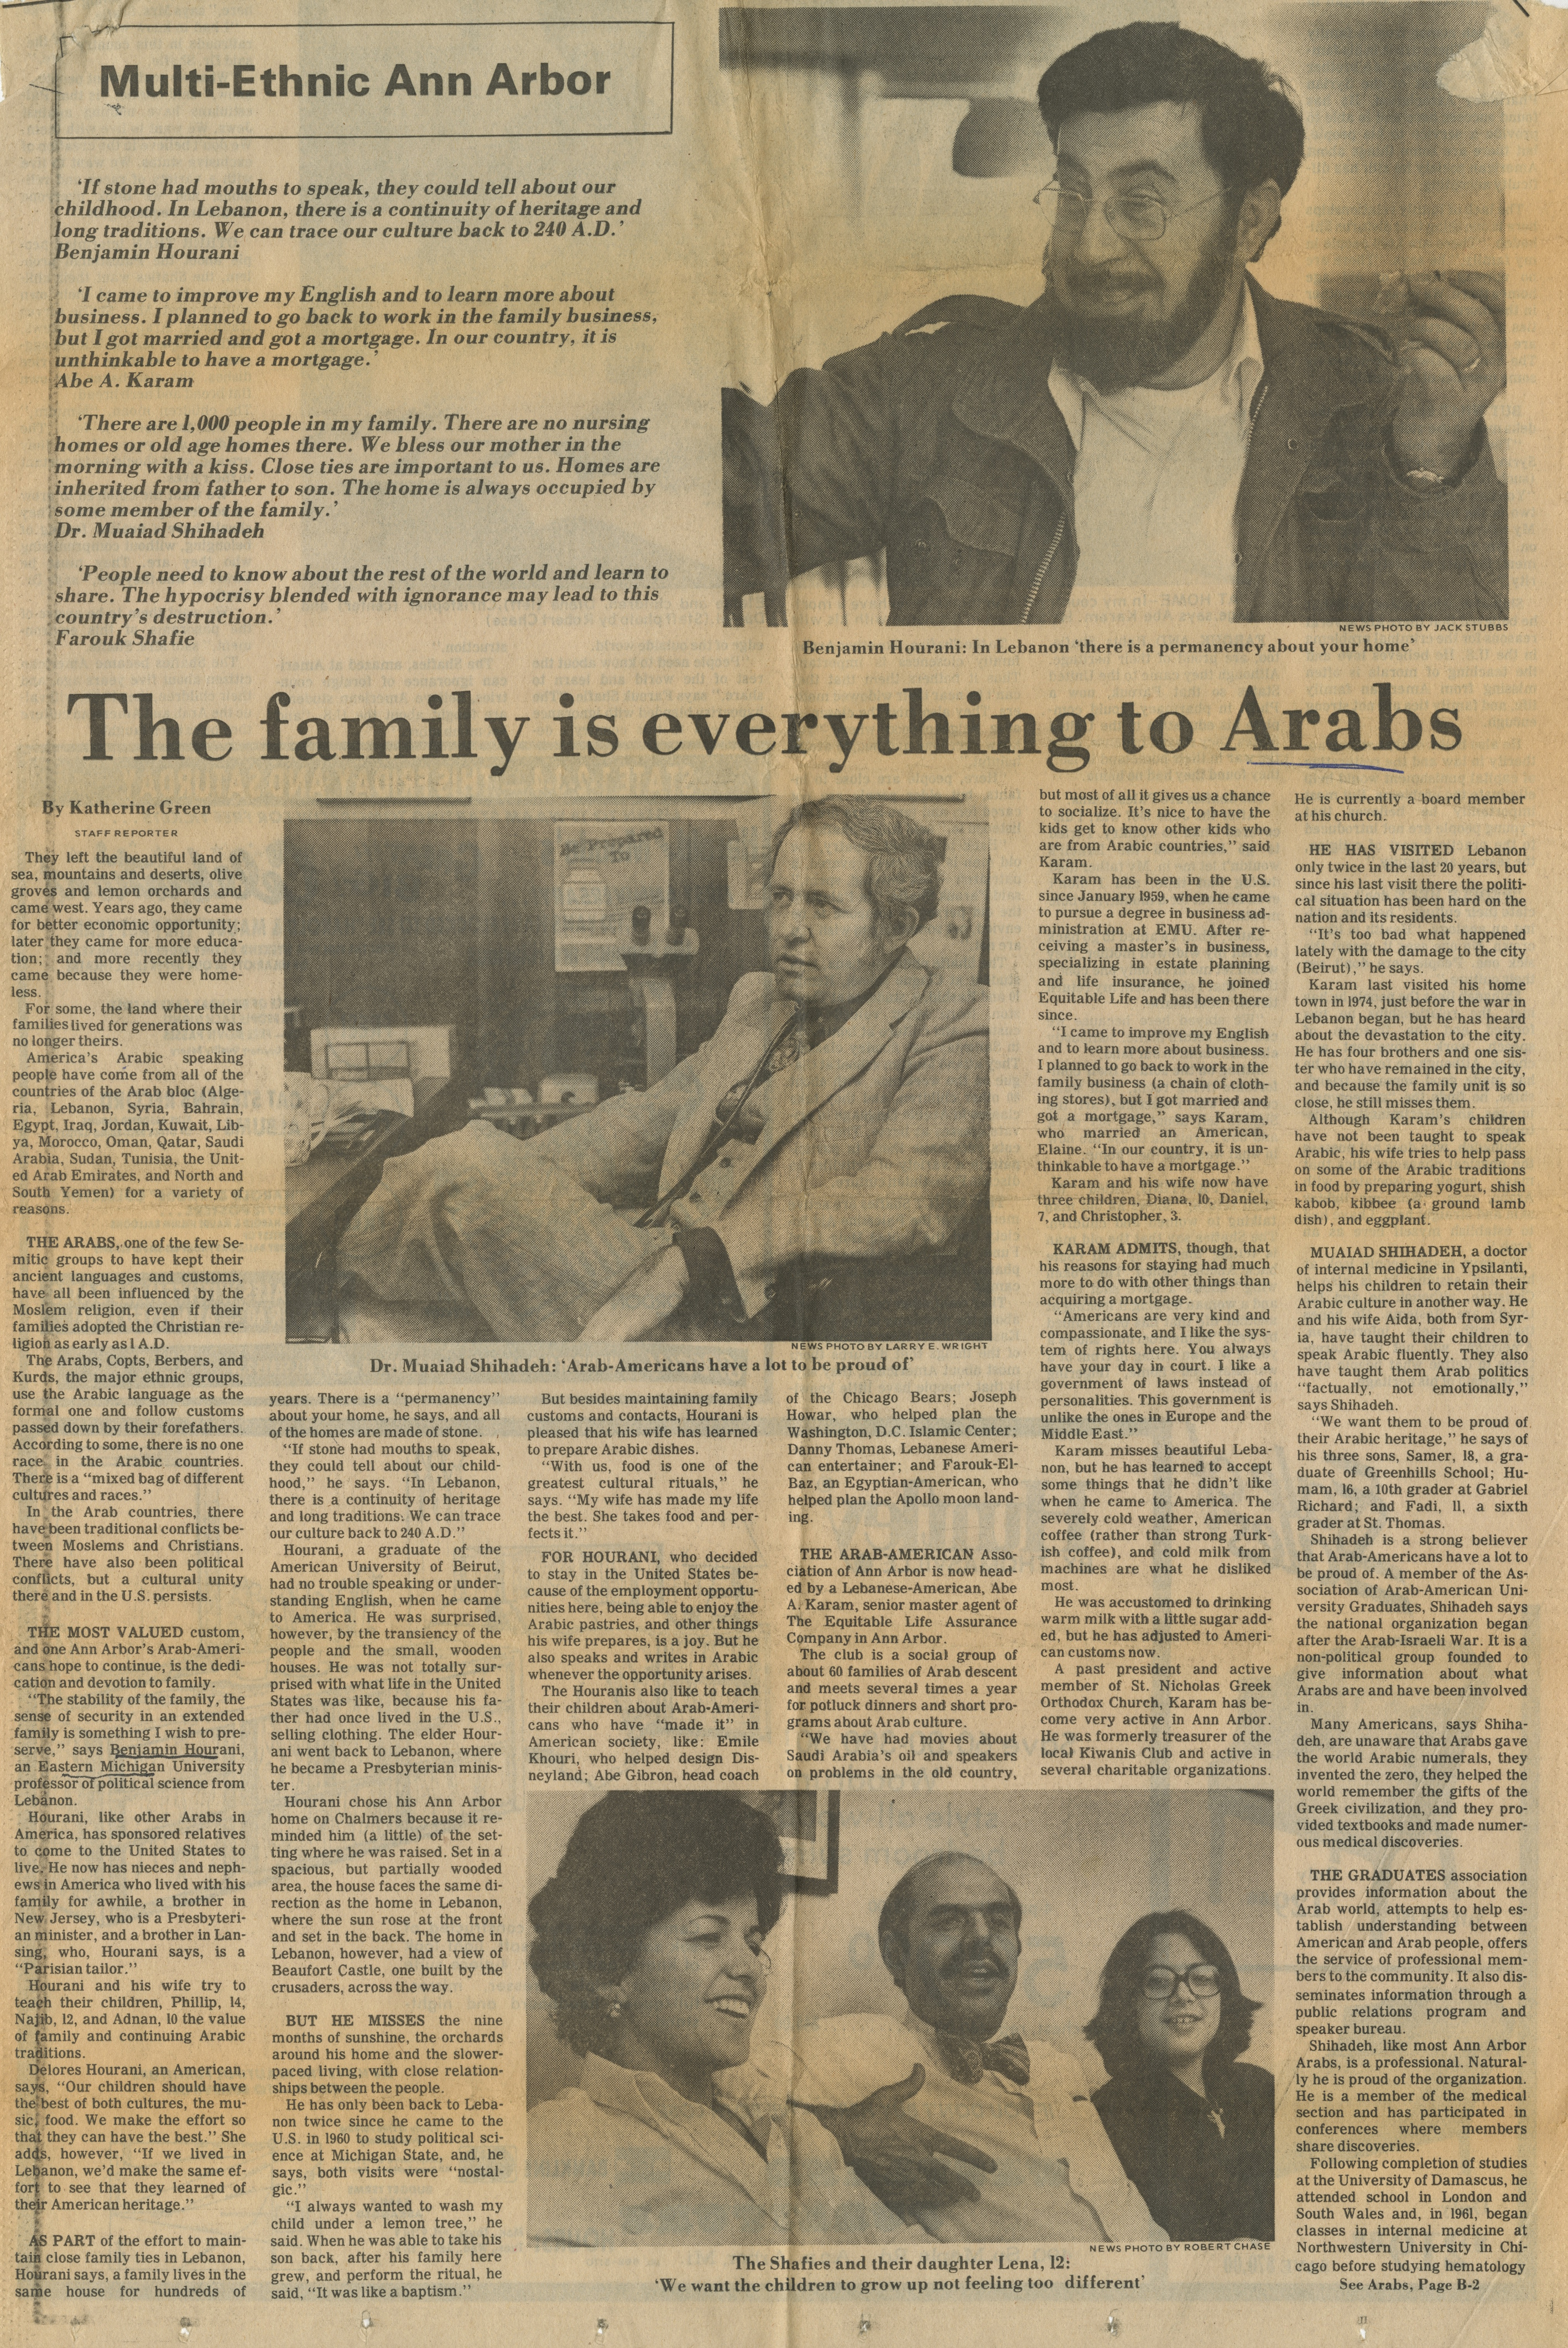 The family is everything to Arabs image